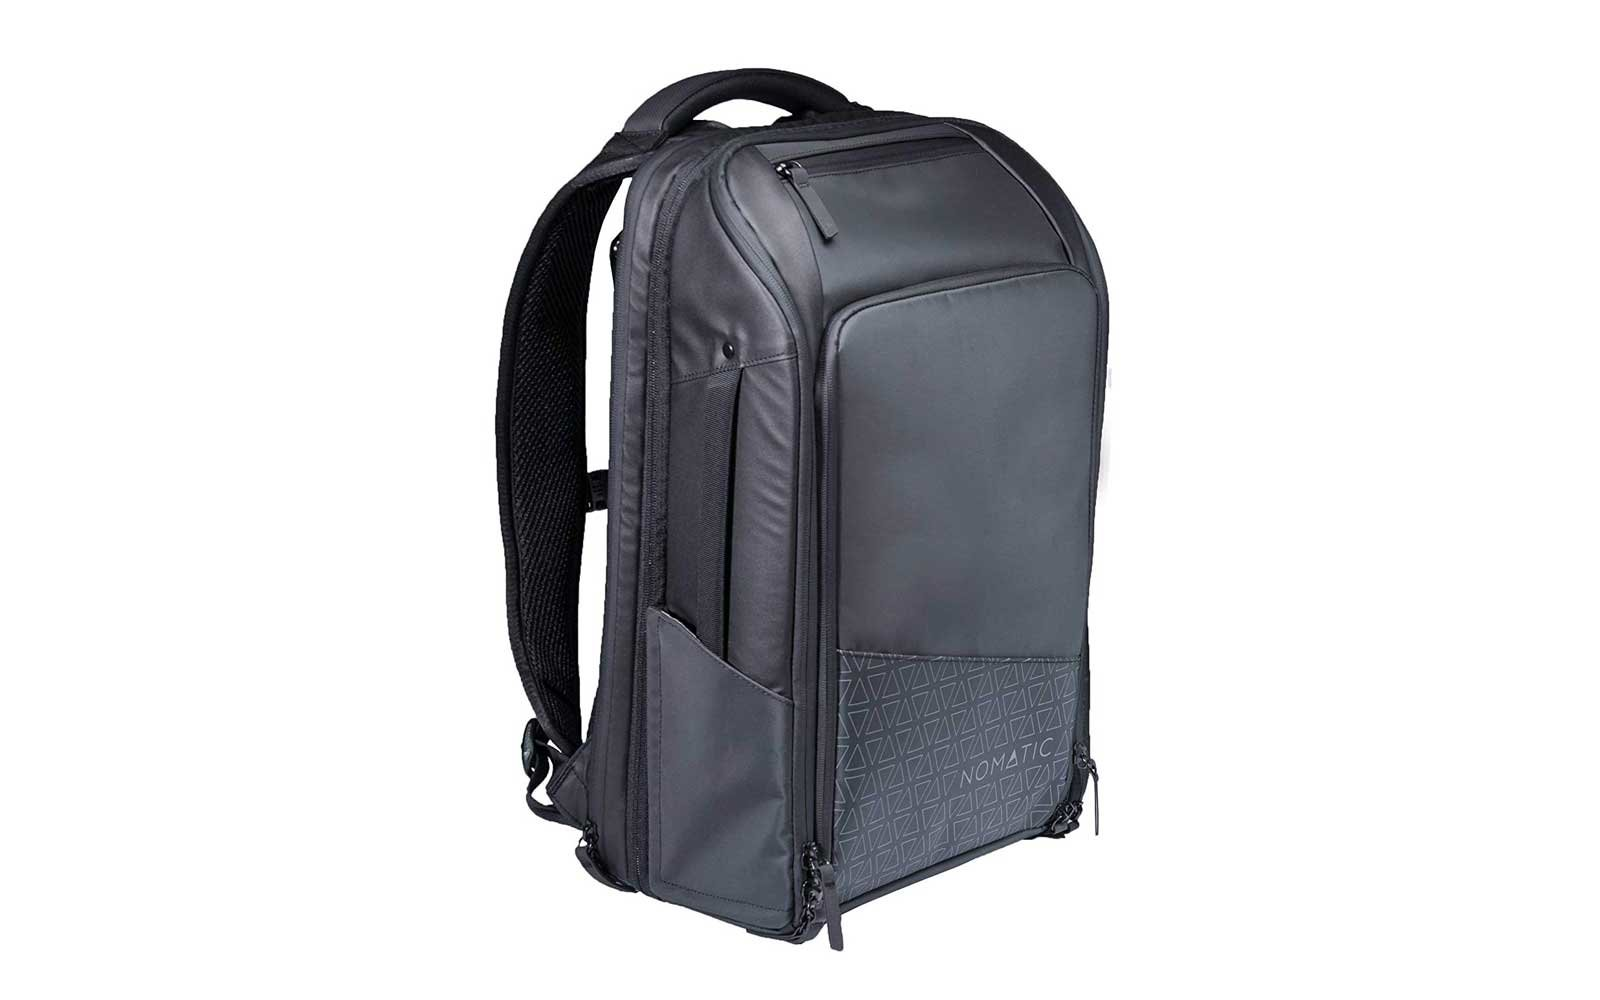 The Best Laptop Backpacks for Travel, According